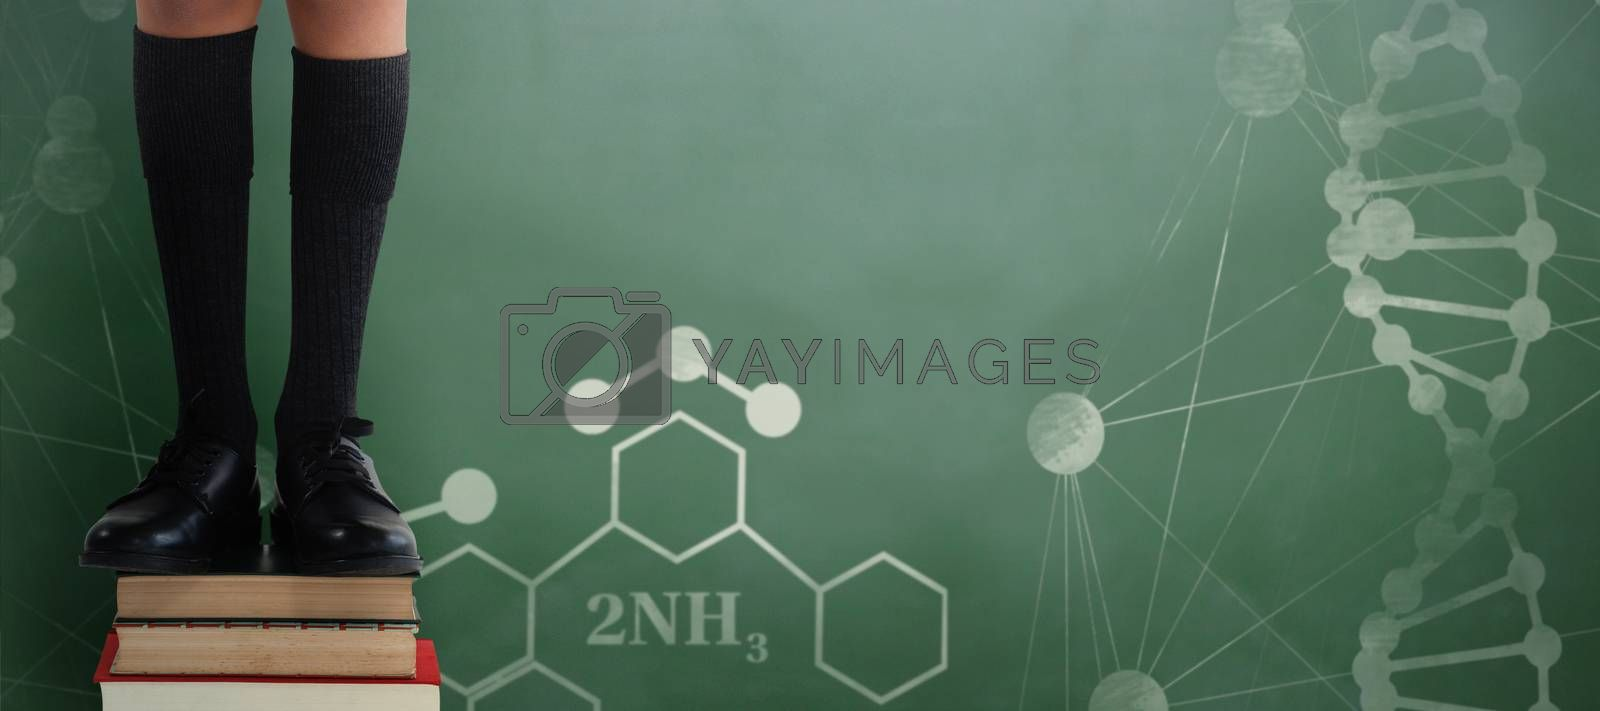 Composite image of low section of schoolboy standing on books by Wavebreakmedia